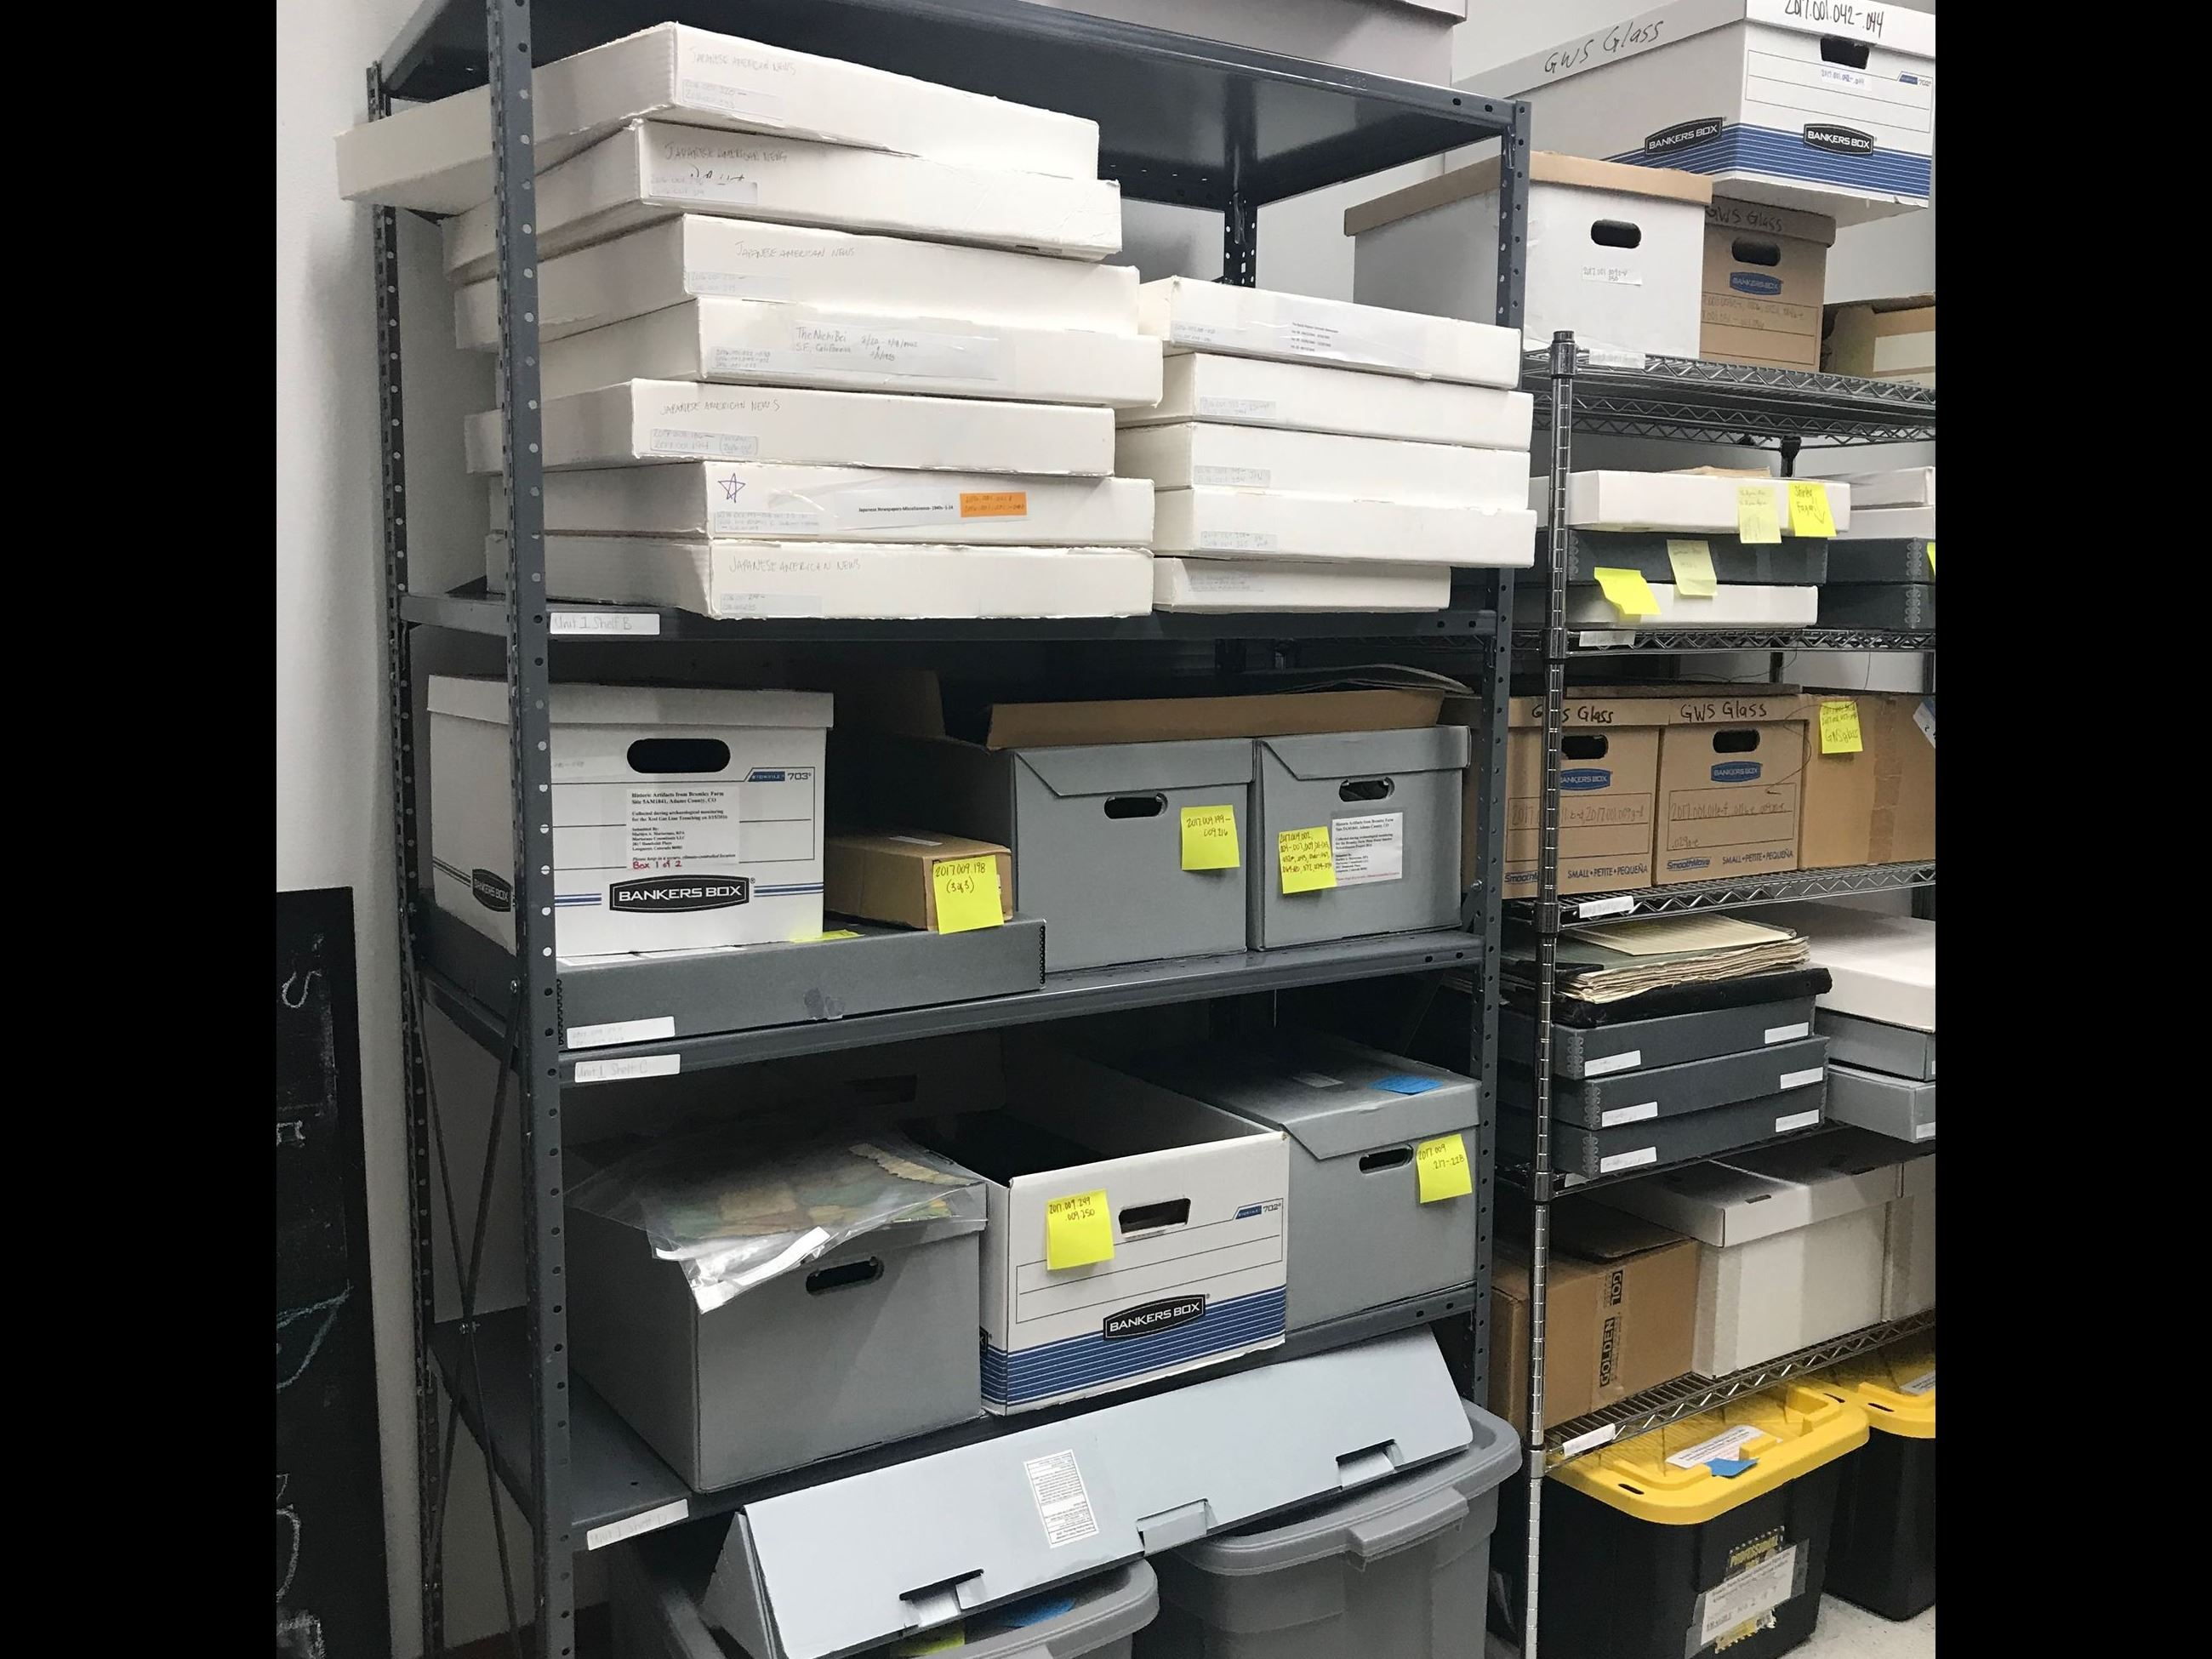 Collections Room1